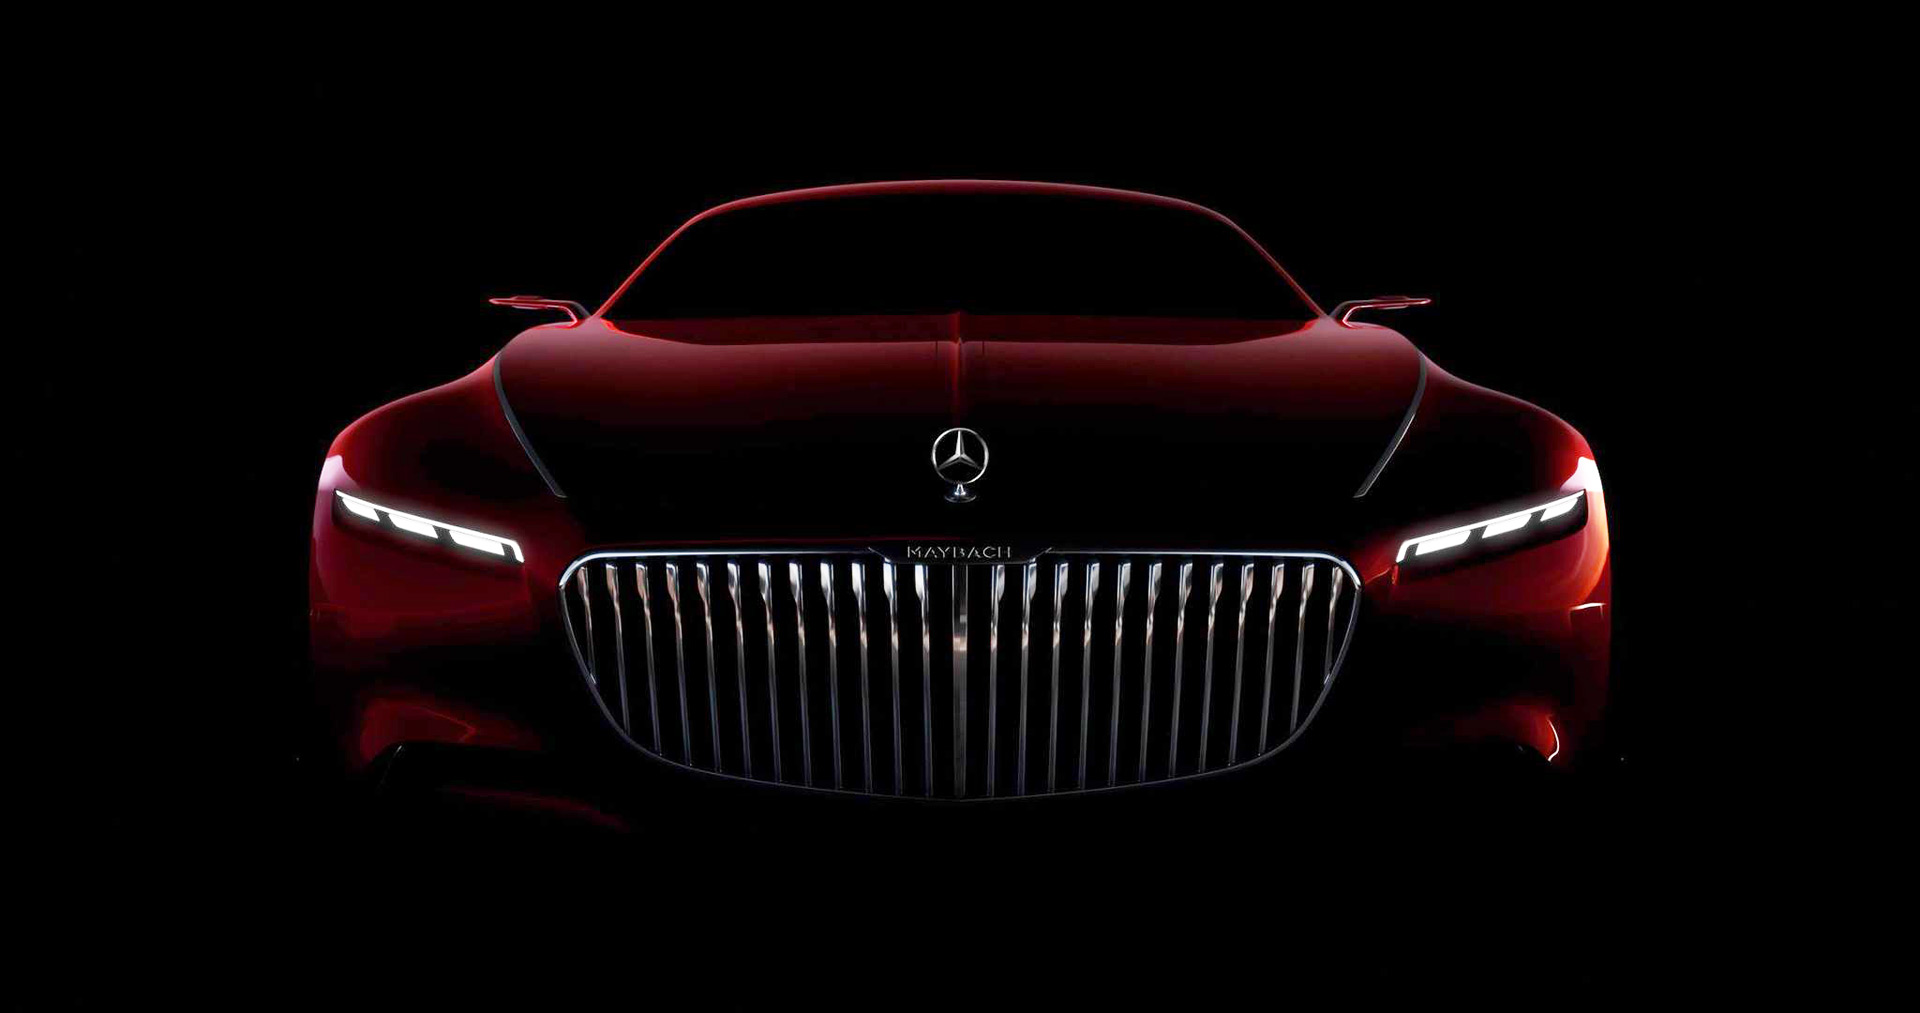 Mercedes Benz Logo Wallpaper Upcoming Cars 2020